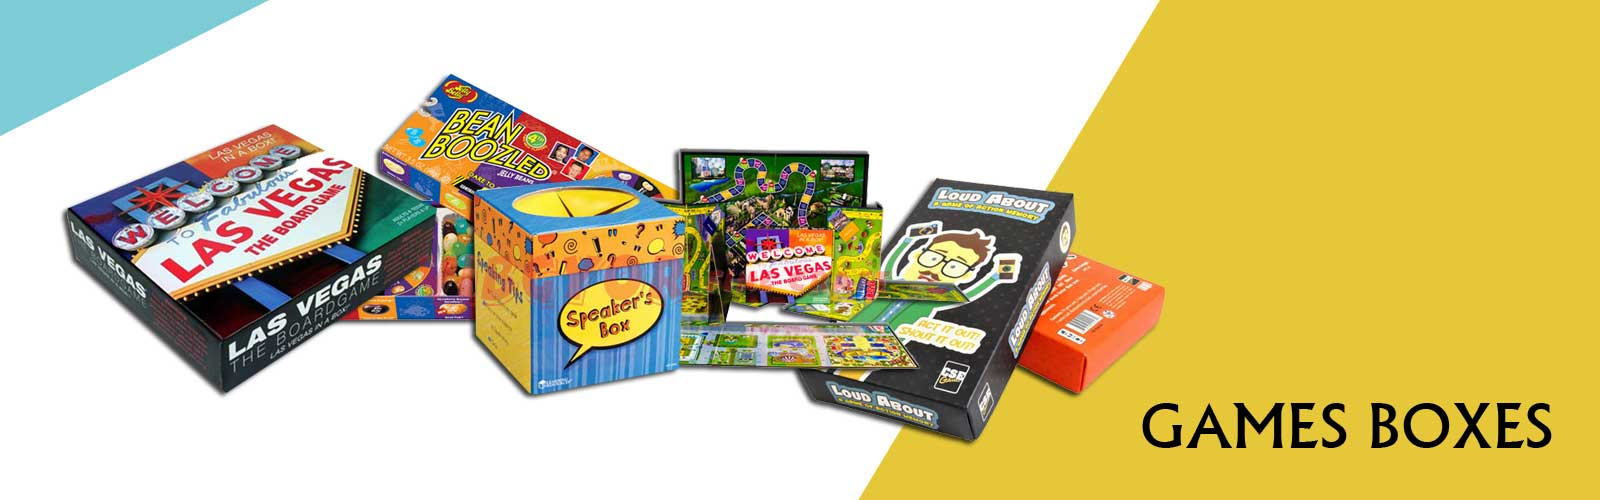 Games Boxes